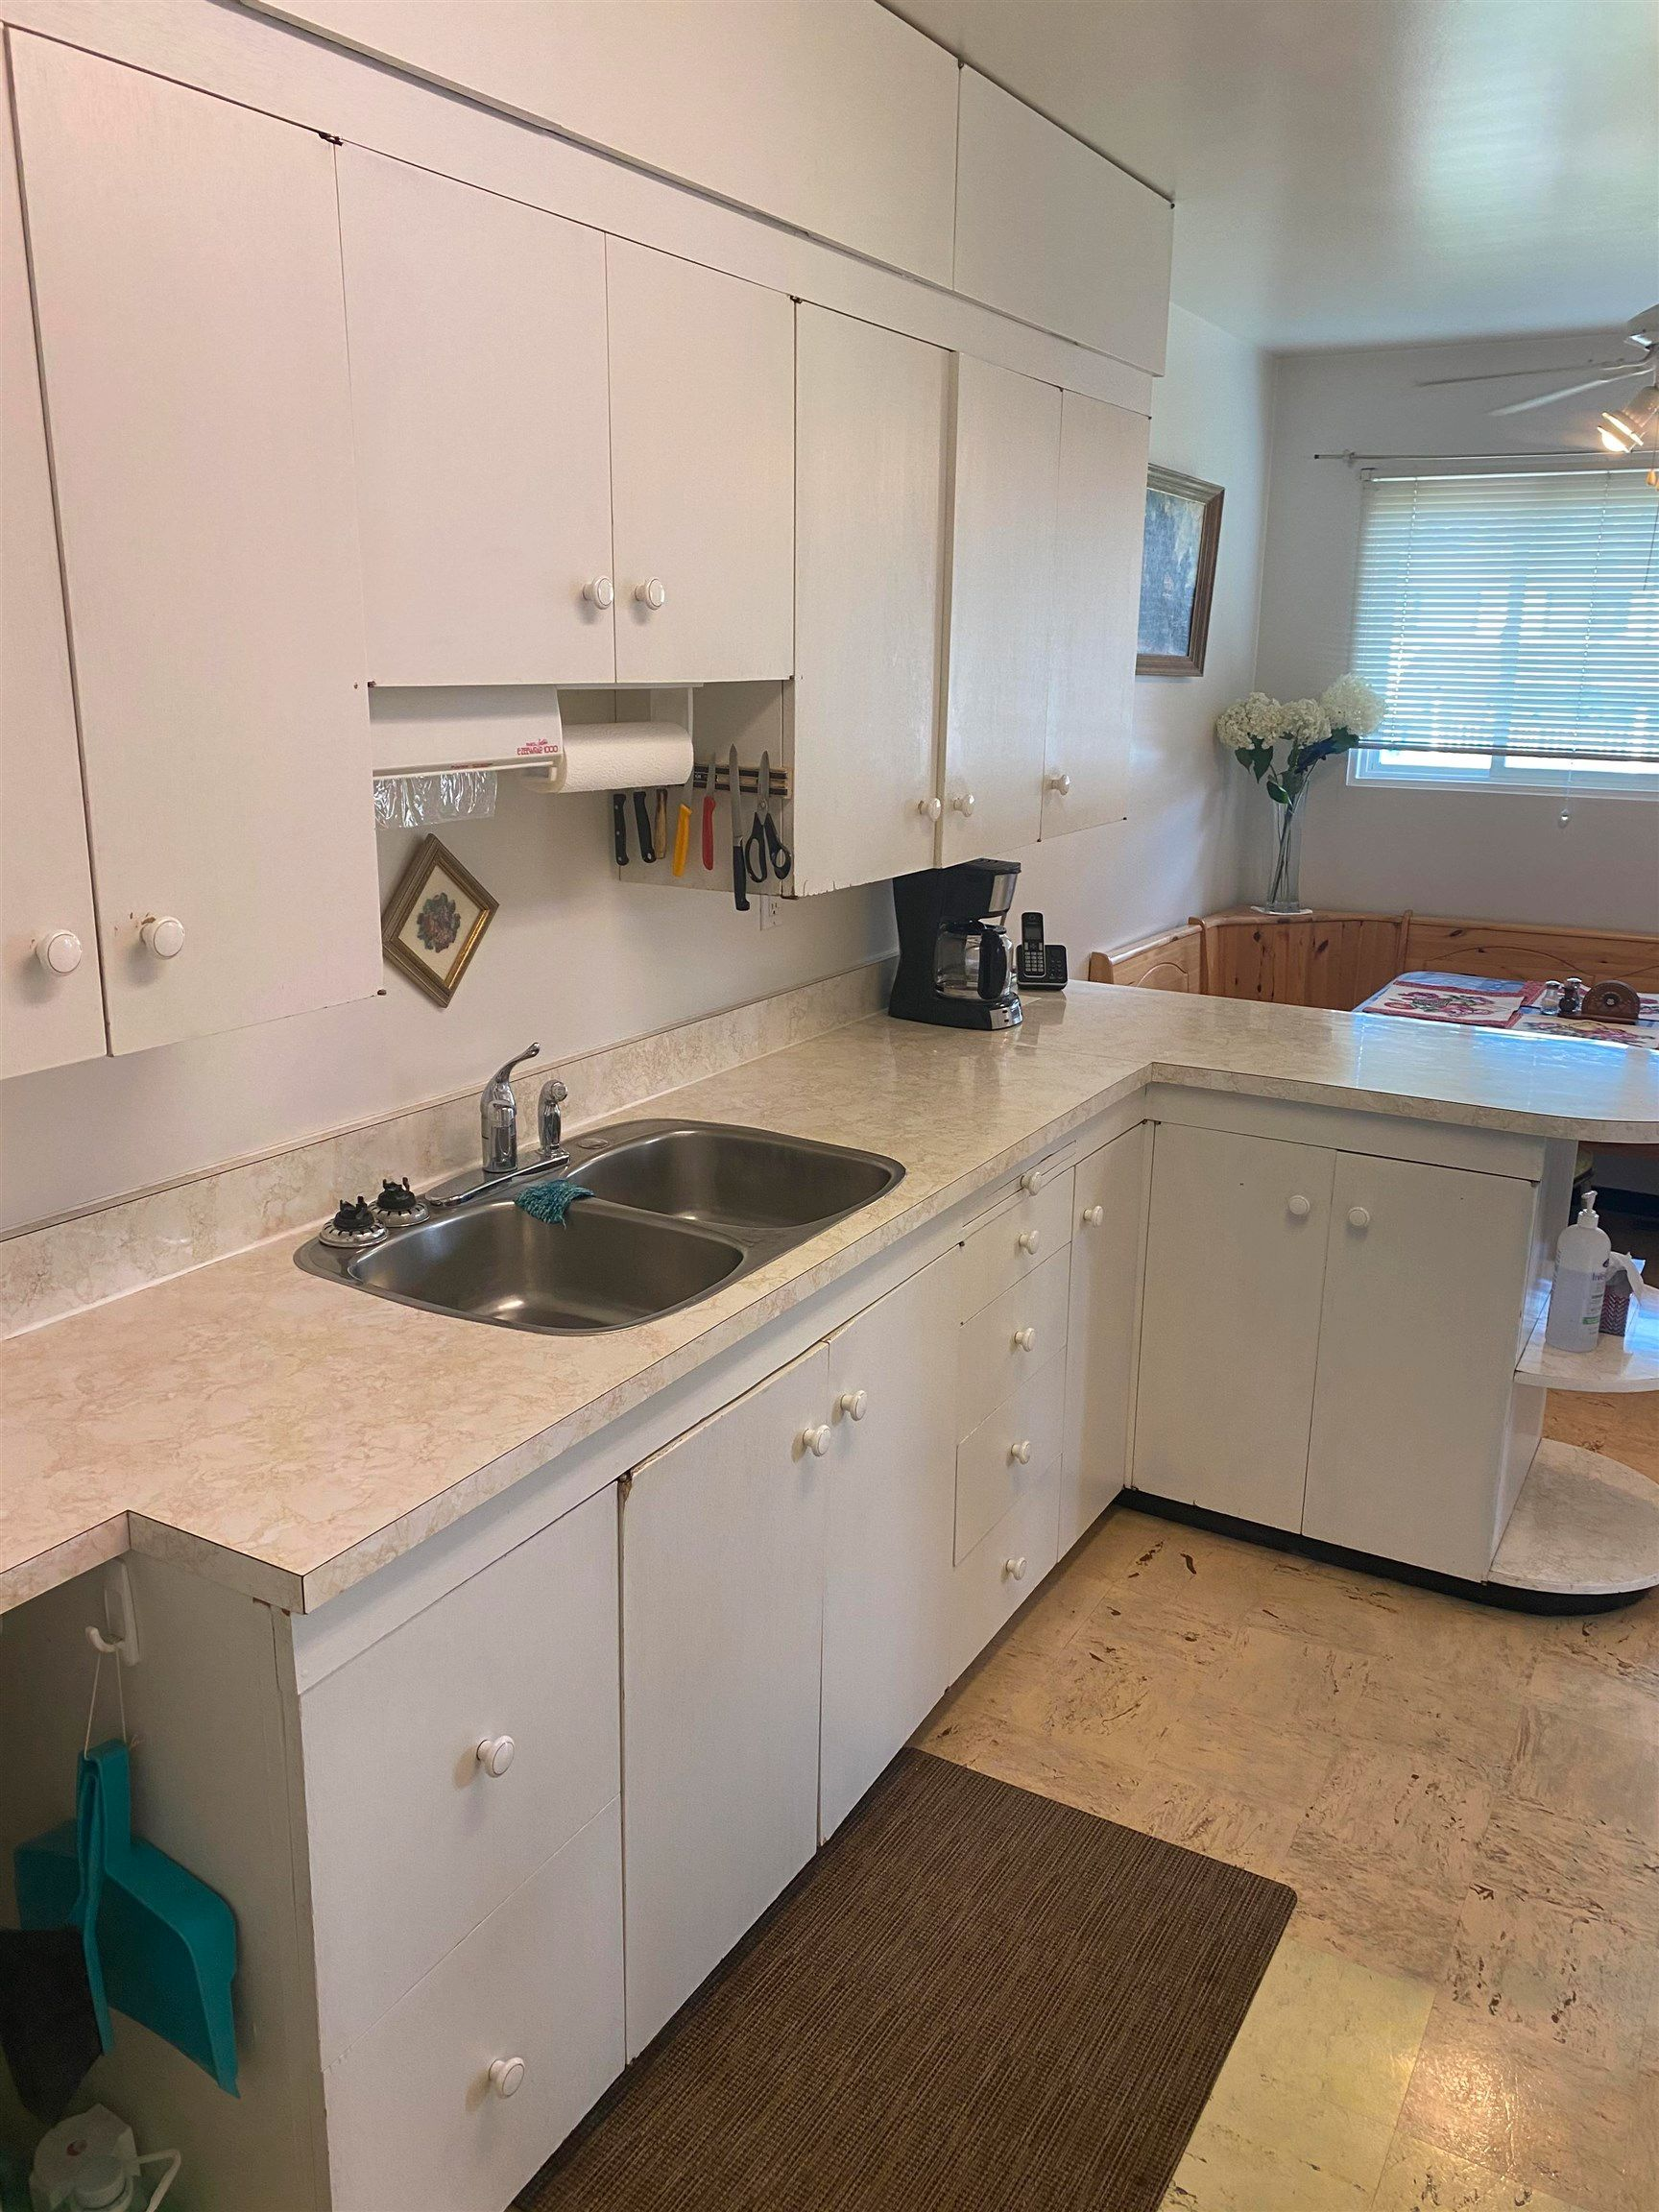 Photo 7: Photos: 346 - 352 CARNEY Street in Prince George: Central Duplex for sale (PG City Central (Zone 72))  : MLS®# R2609479